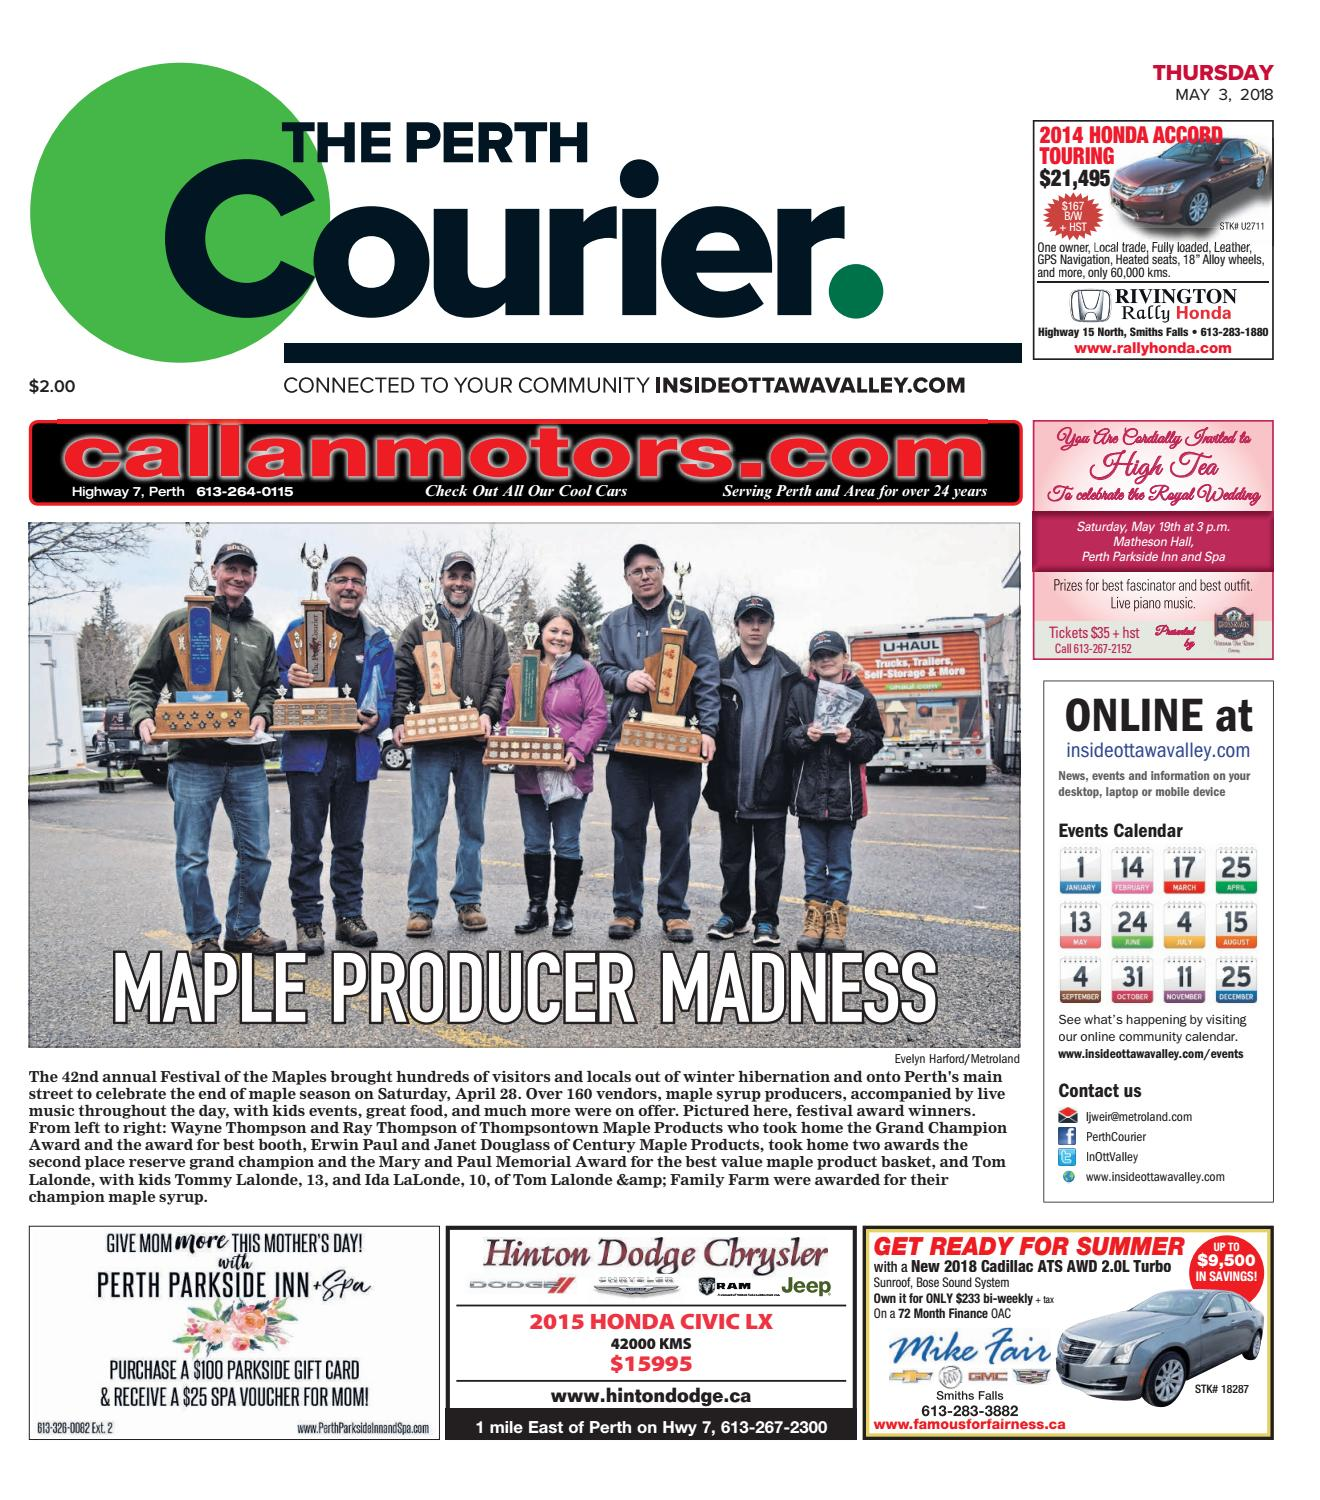 Otv P A 20180503 By Metroland East The Perth Courier Issuu Terry Palmer Premium Towel Bath Ampamp Travel 500g Set2tp1001 Set Of 2 Light Blue